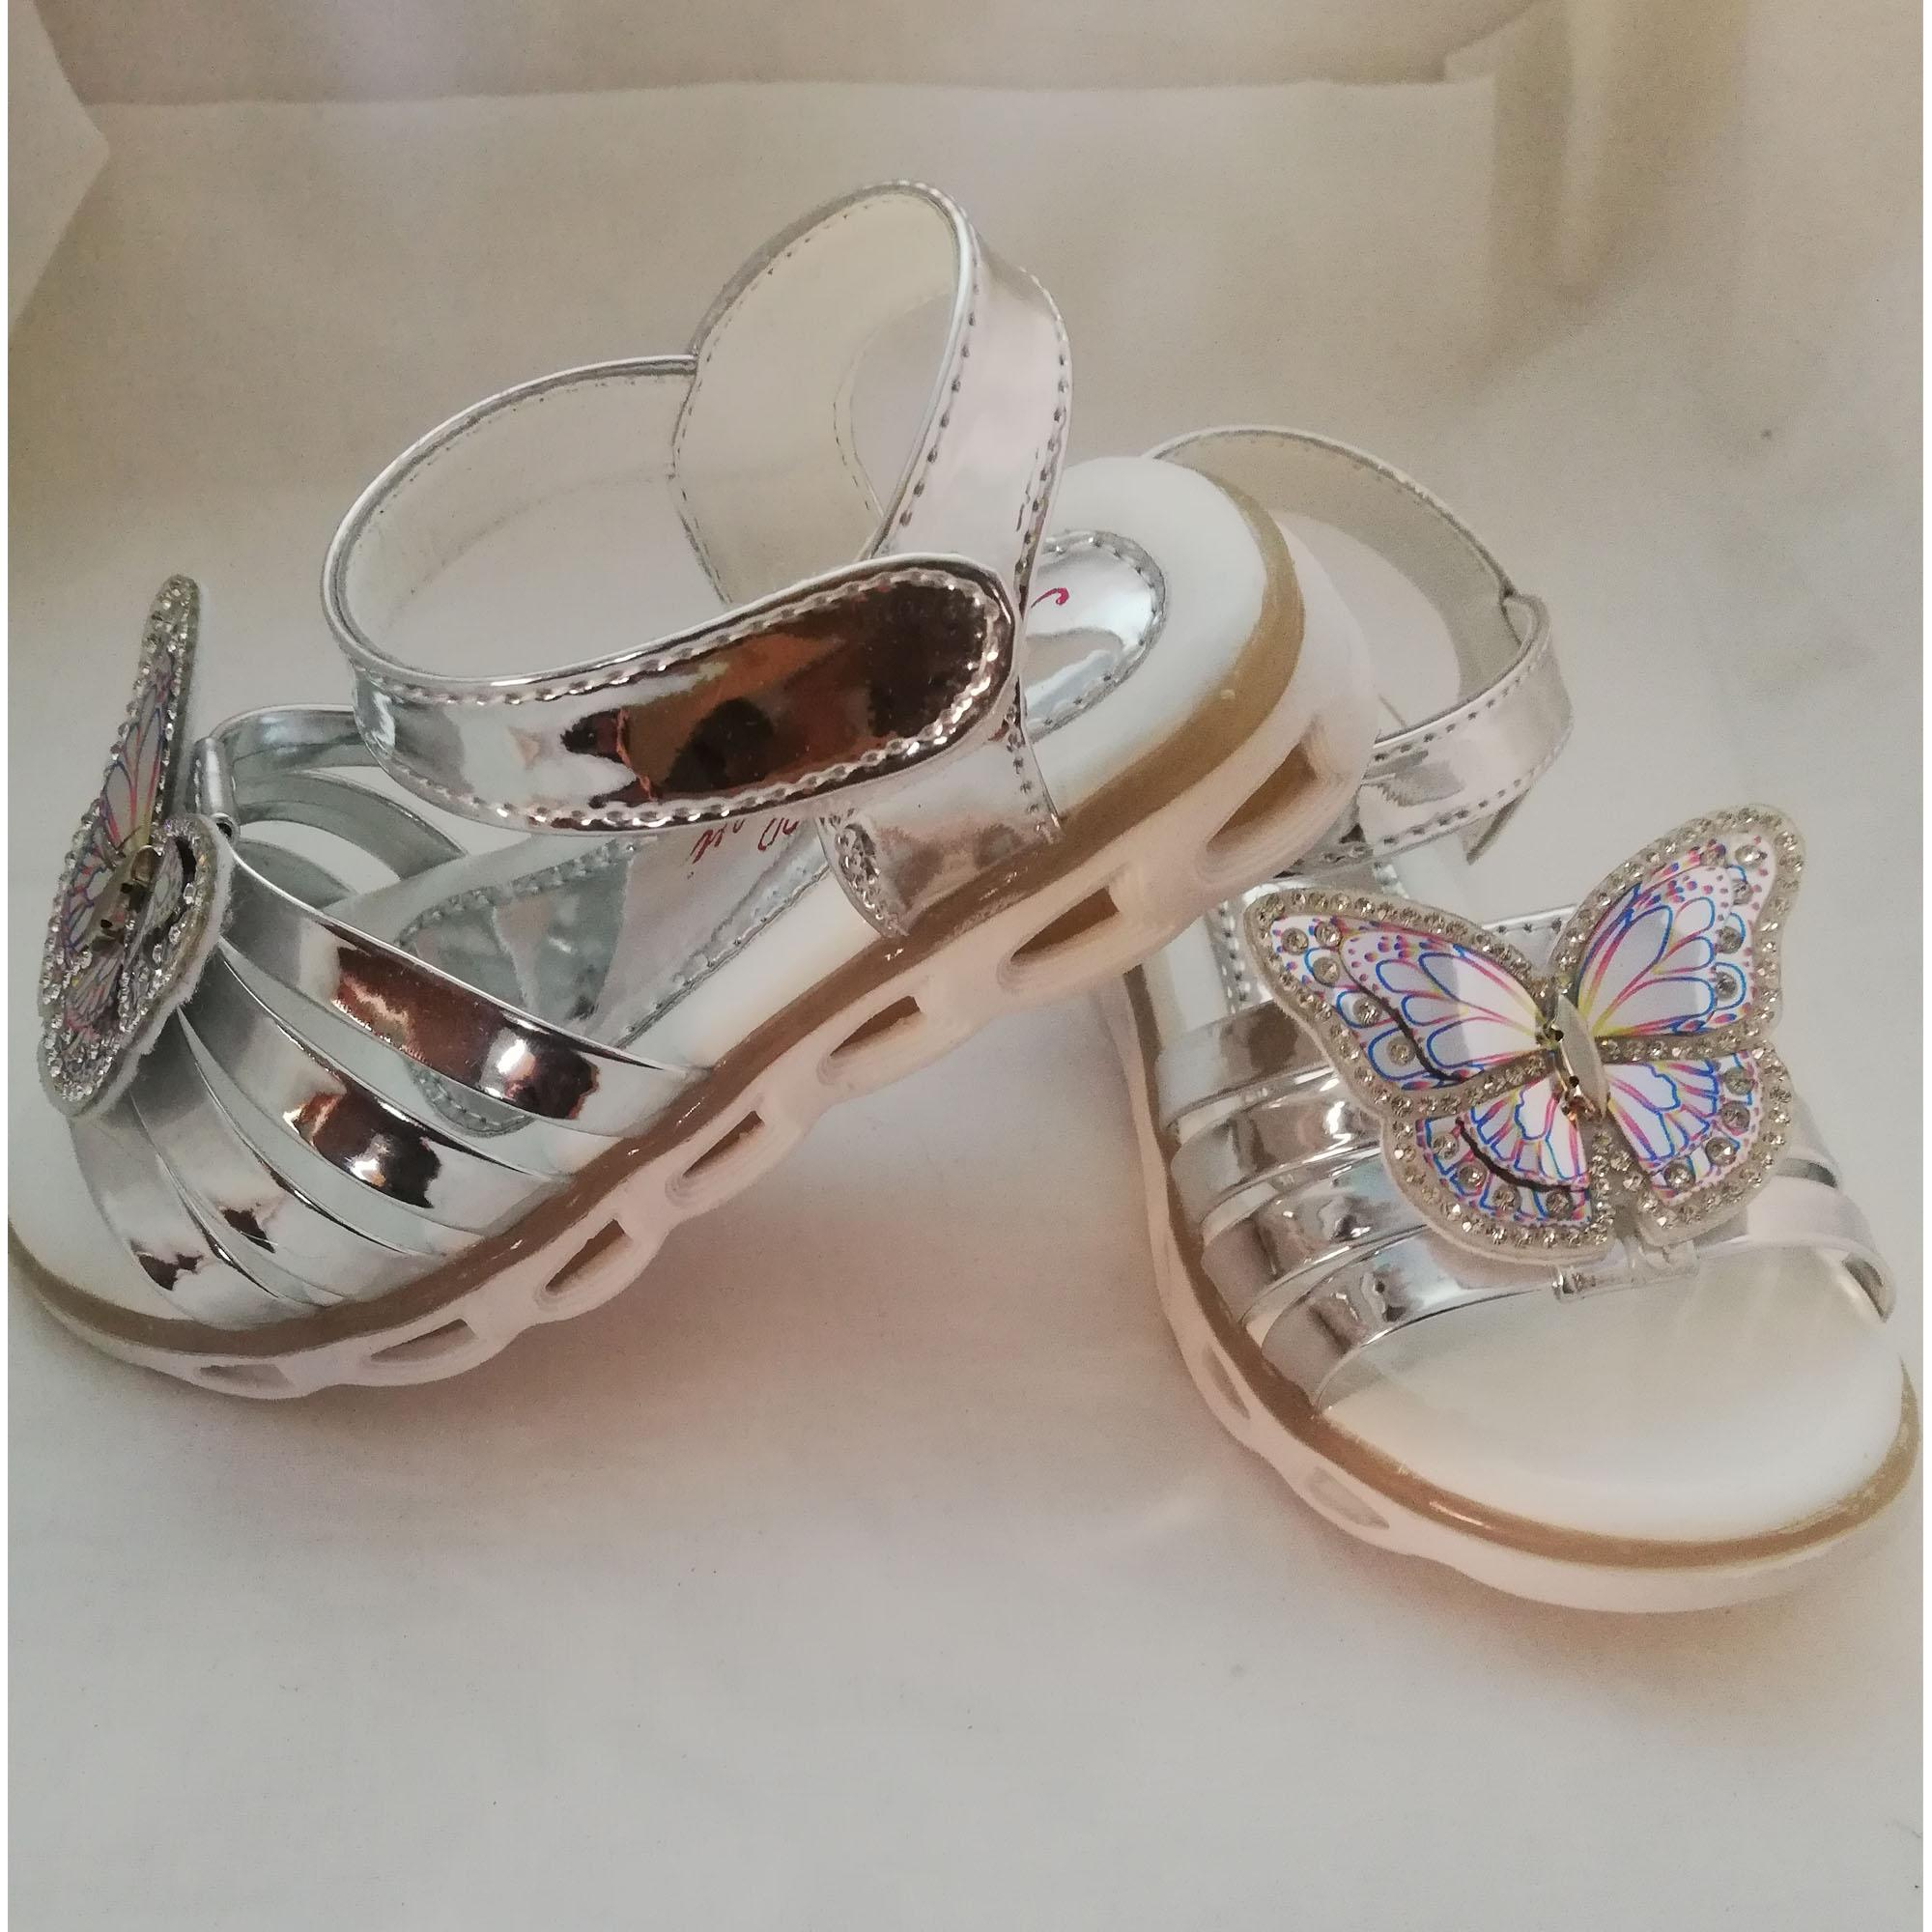 Imported Baby girl fancy Sandal shoes